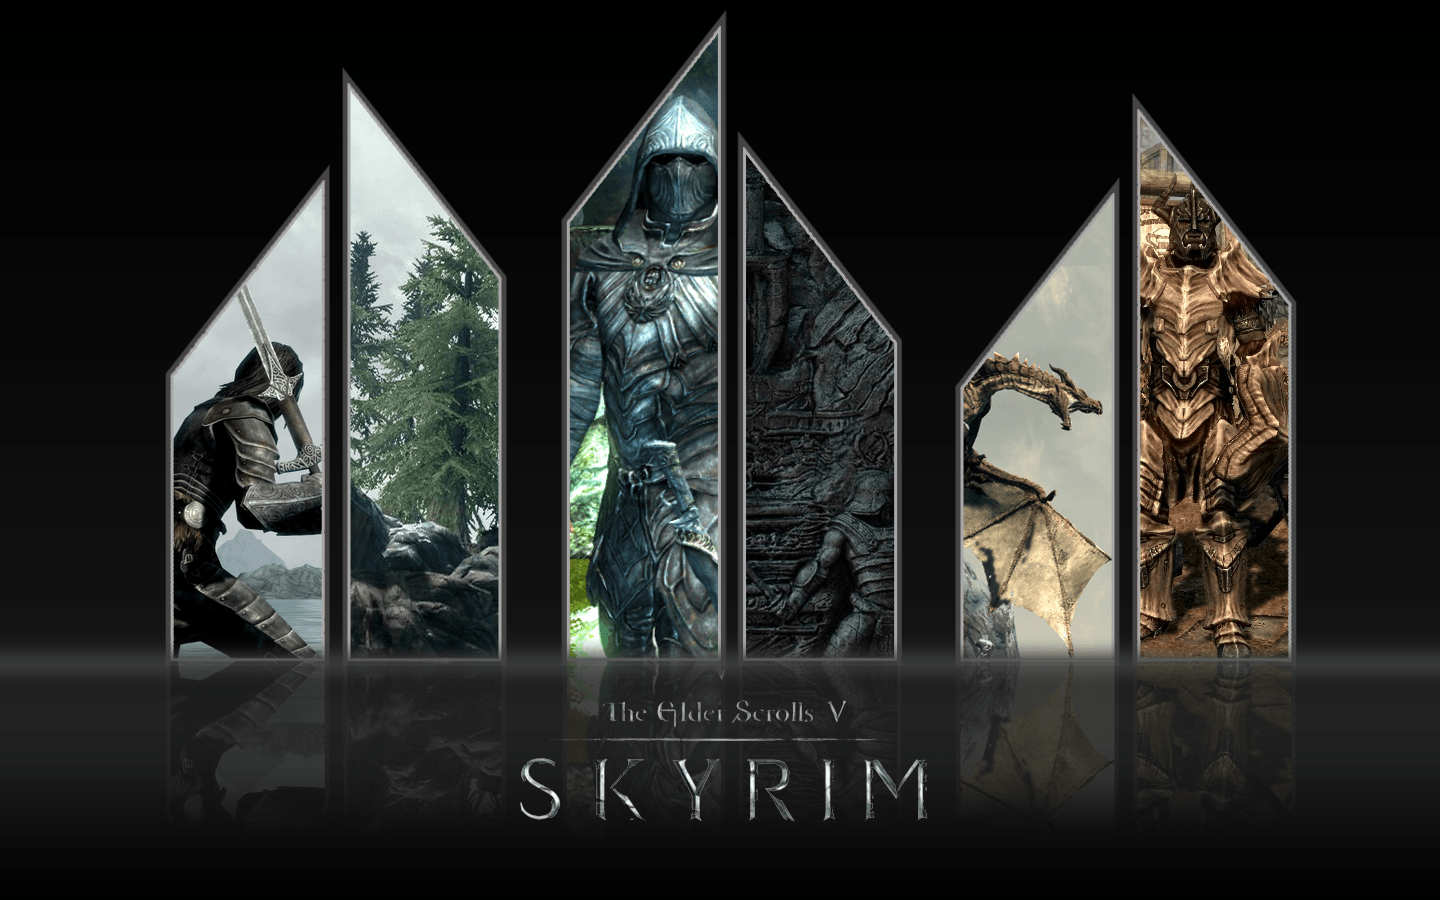 skyrim 1980 x 1040 wallpaper - photo #47